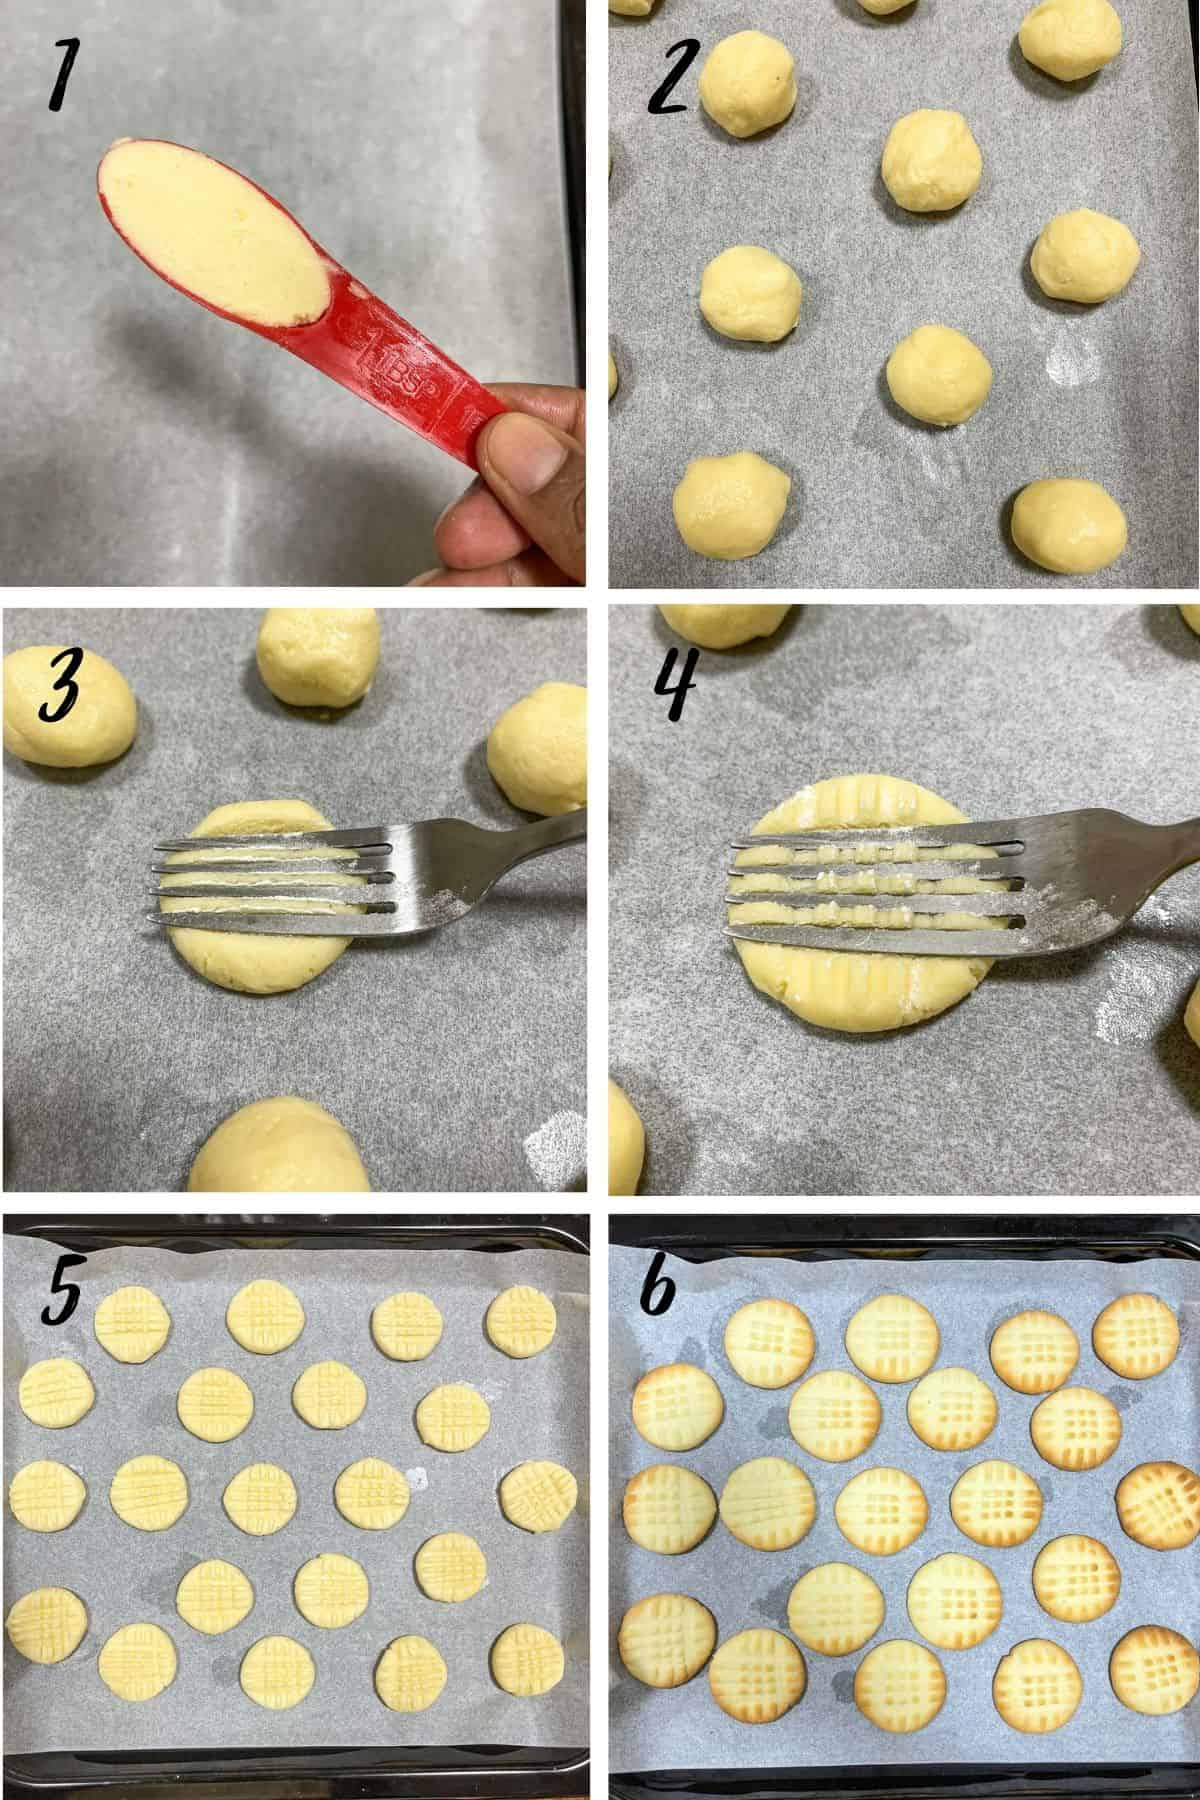 A poster of 6 images showing how to shape 3 ingredient cookies with a fork